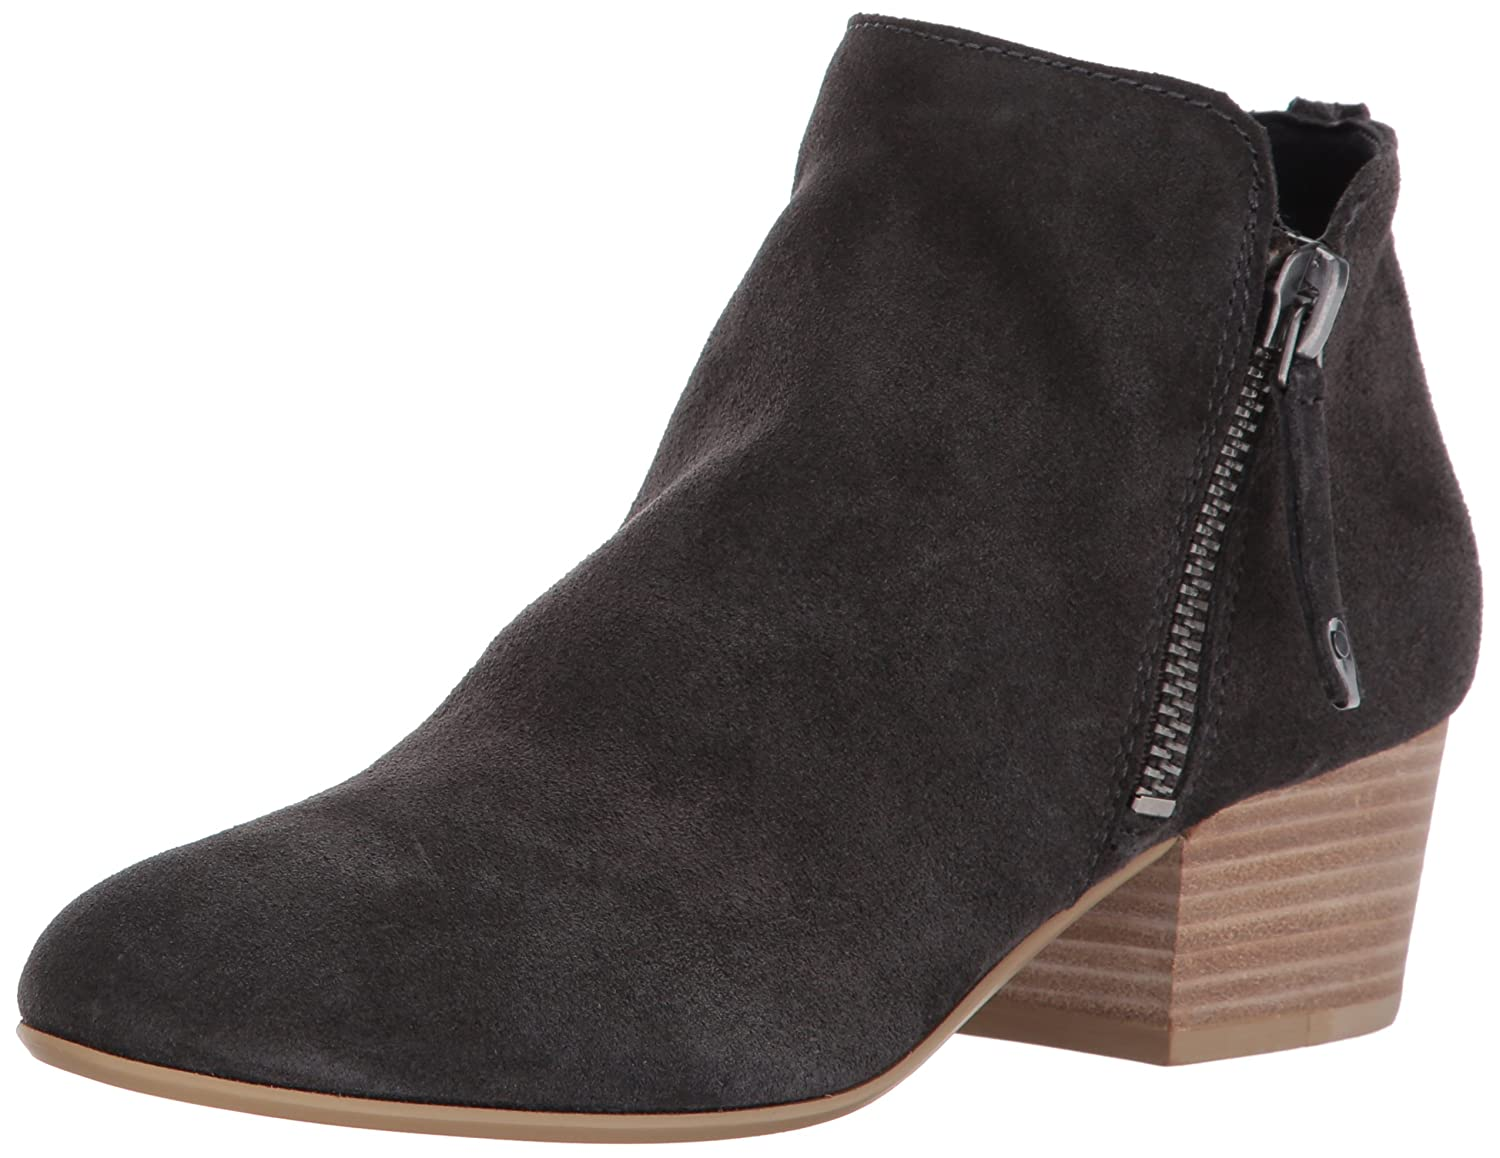 Dolce Vita Women's Gertie Ankle Boot B06XGL831T 8.5 B(M) US|Anthracite Suede